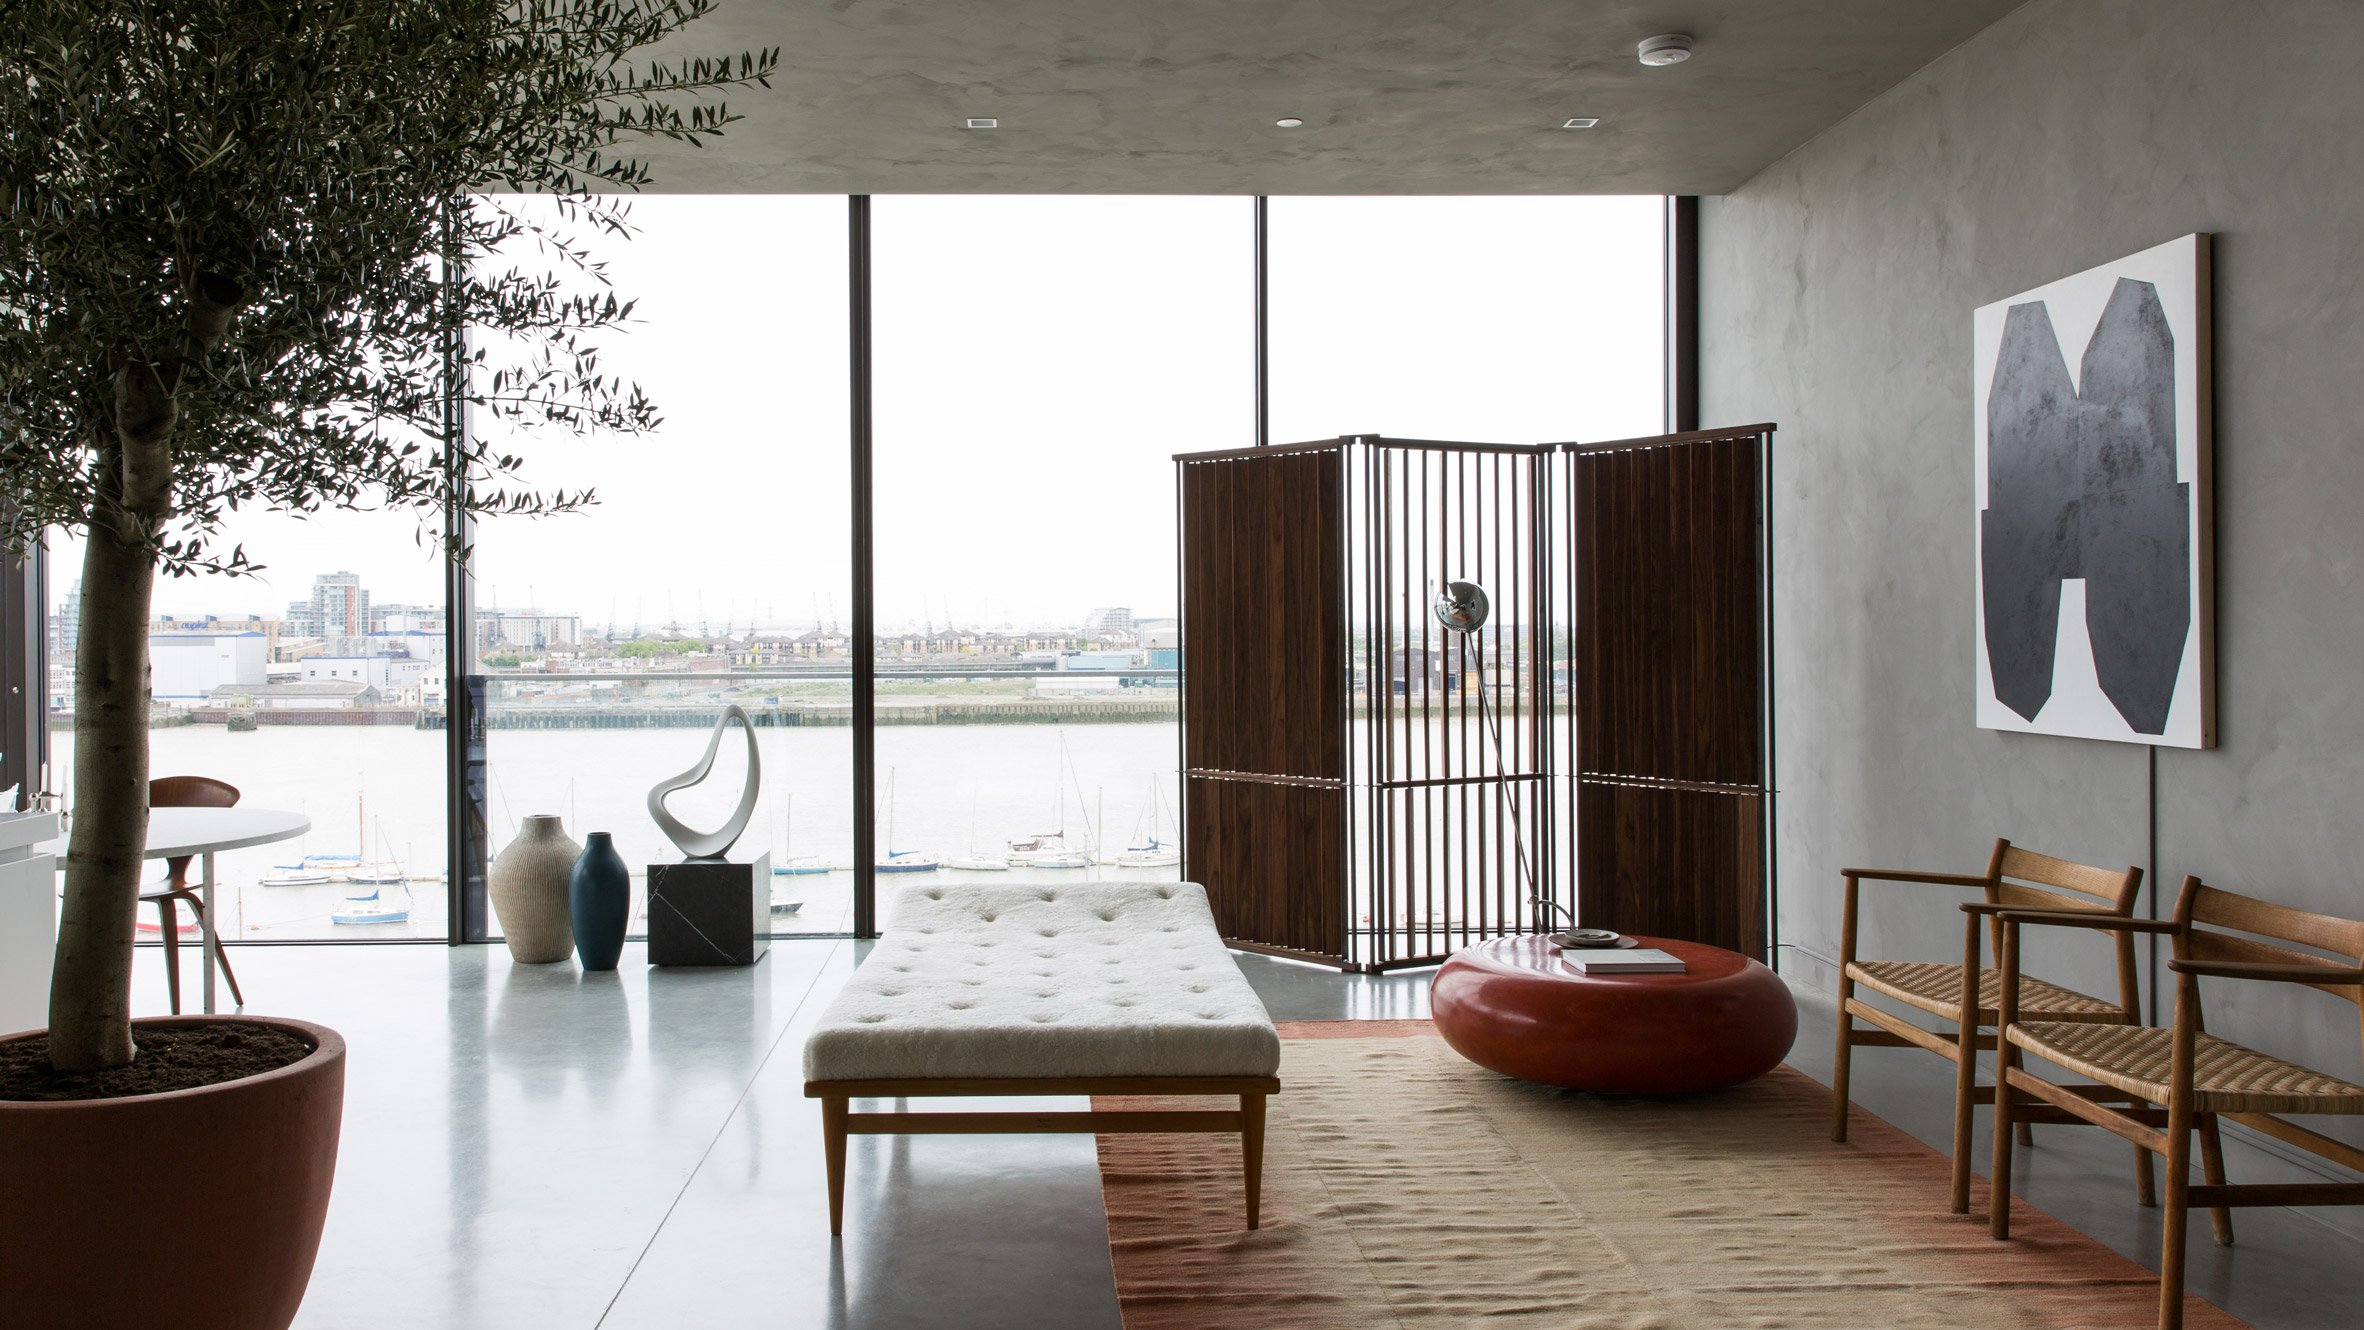 Design Magazine Cereal Has Teamed Up With Literate Estate Agents Aucoot To Create A Temporary Three Bedroom Penthouse Apartment On The Greenwich